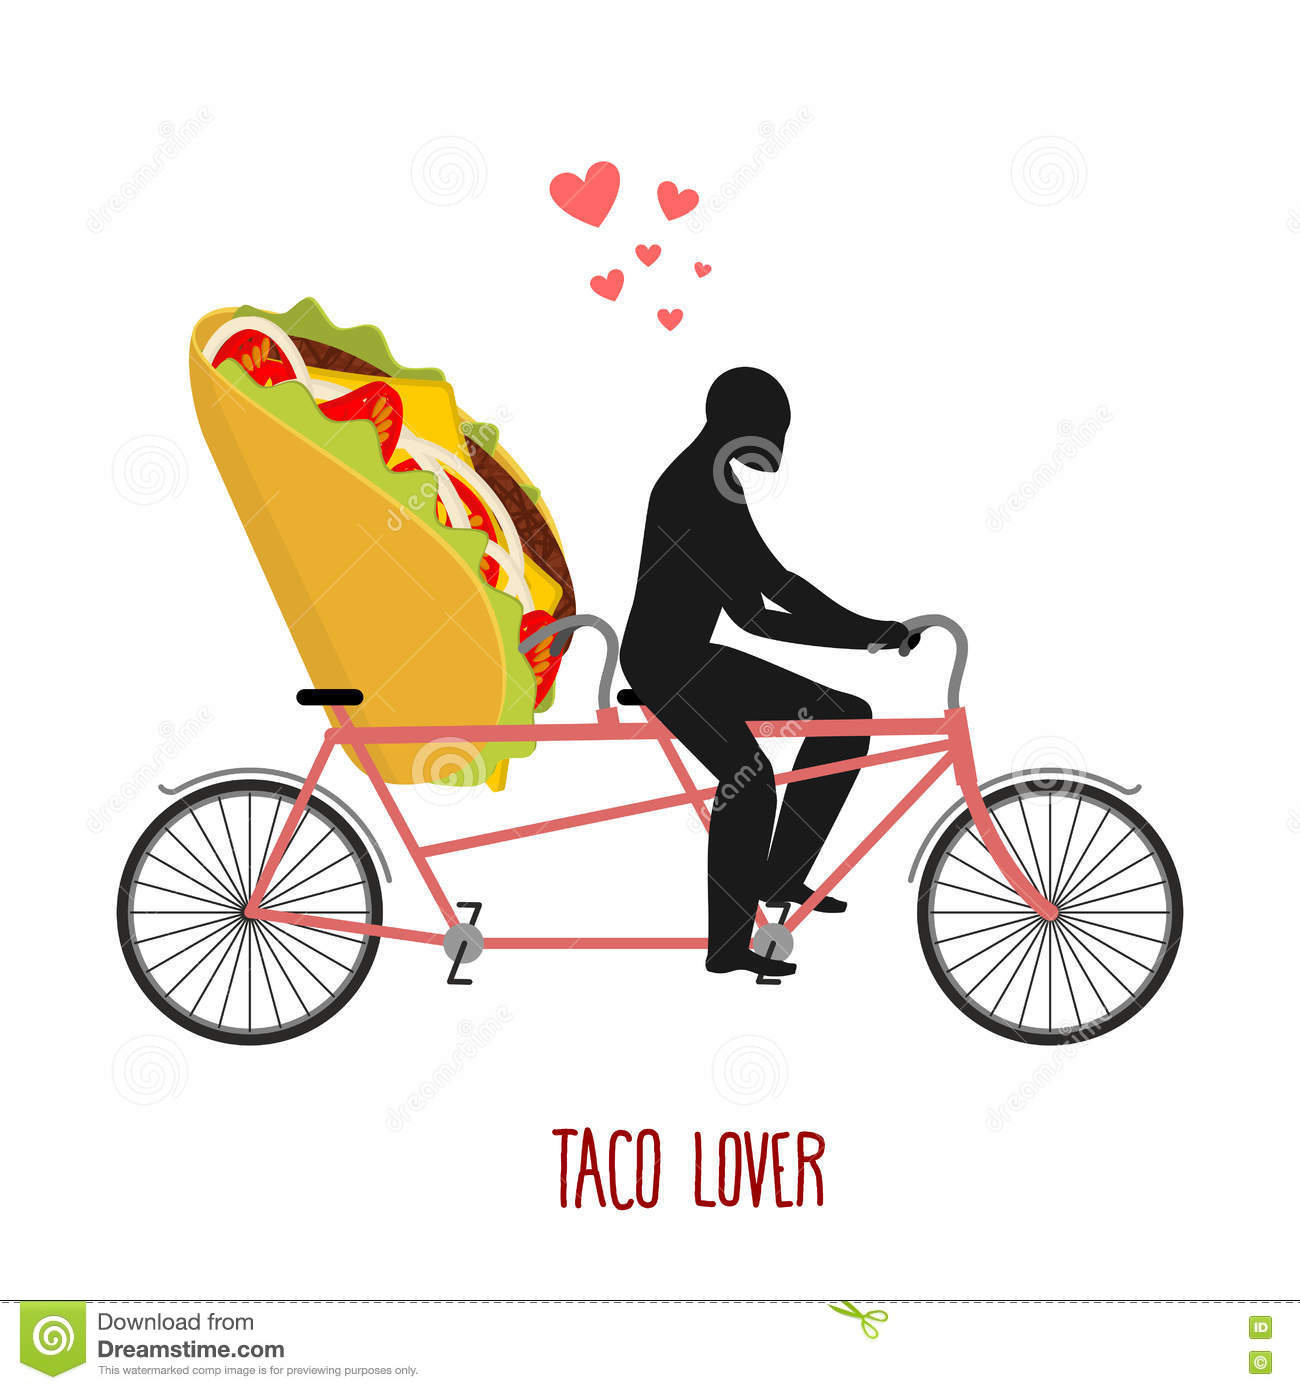 Fast love speed dating manchester